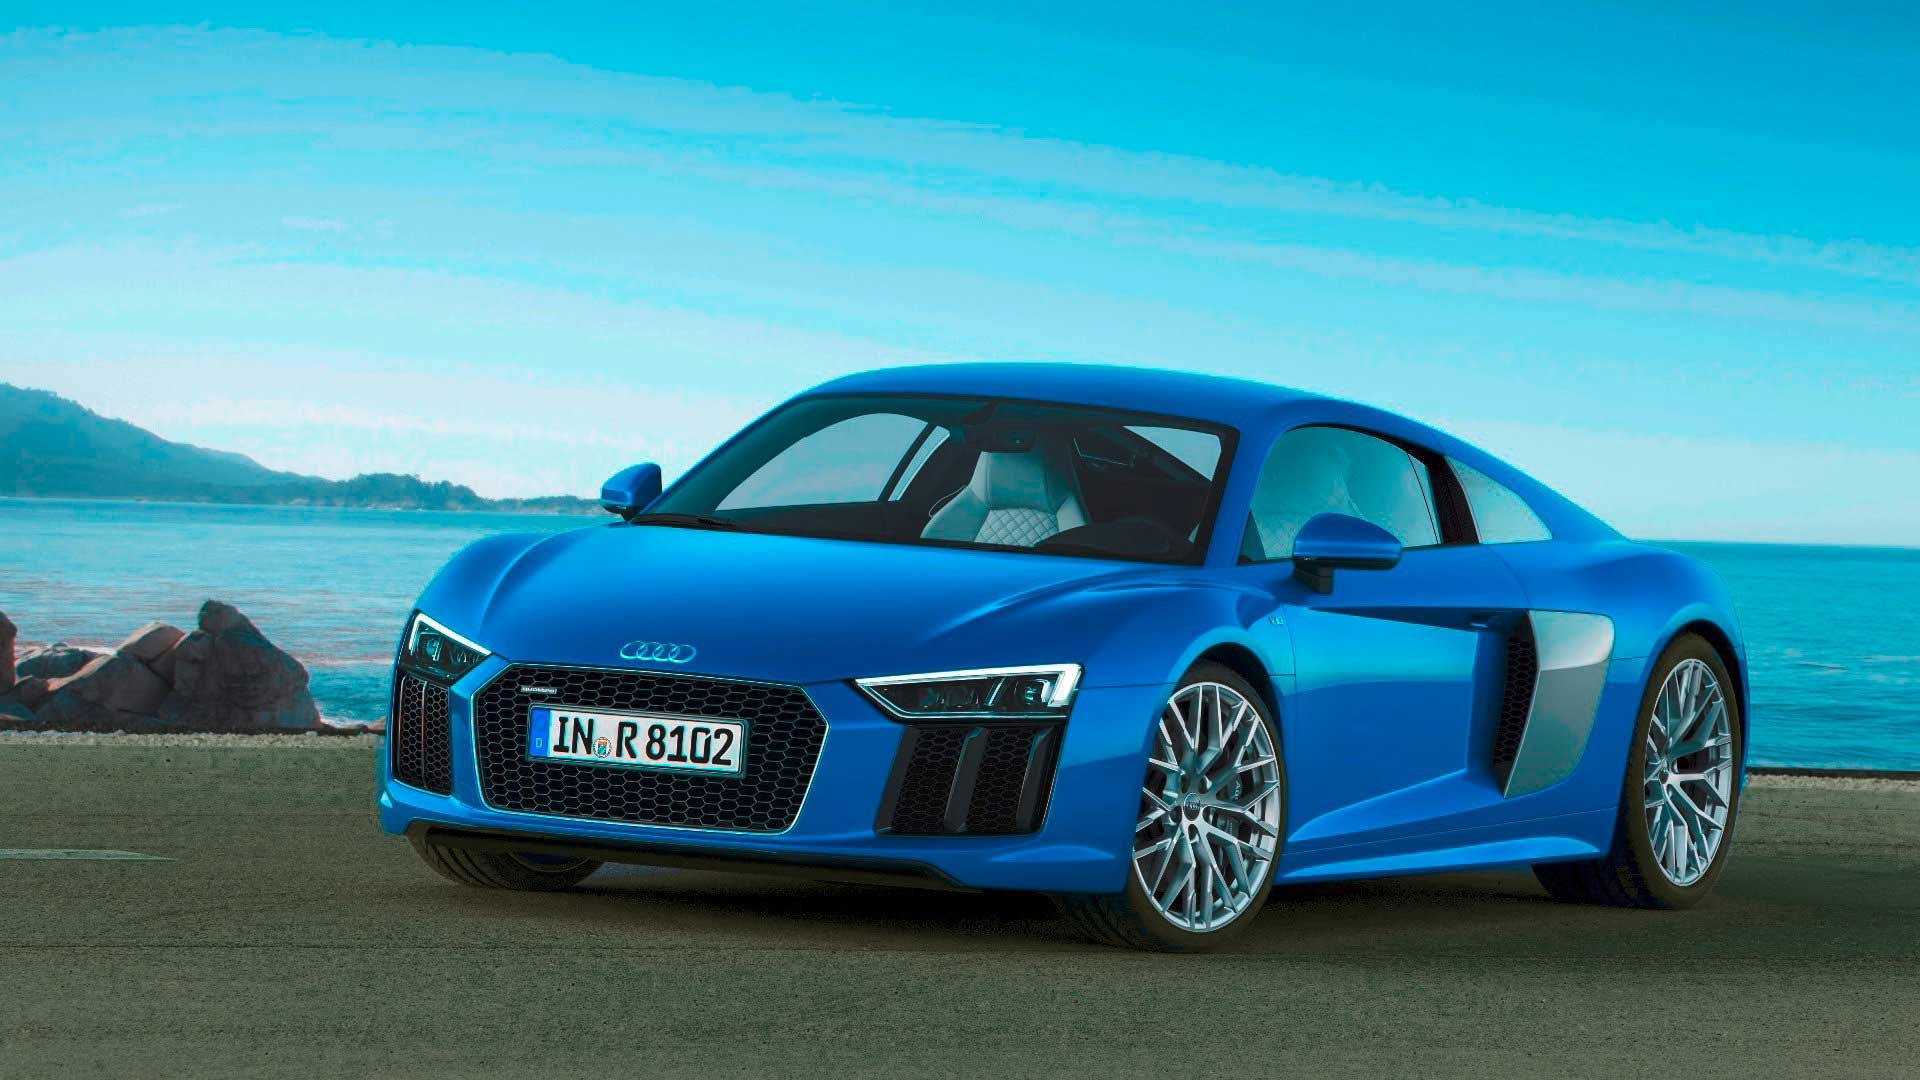 The 2017 Audi R8